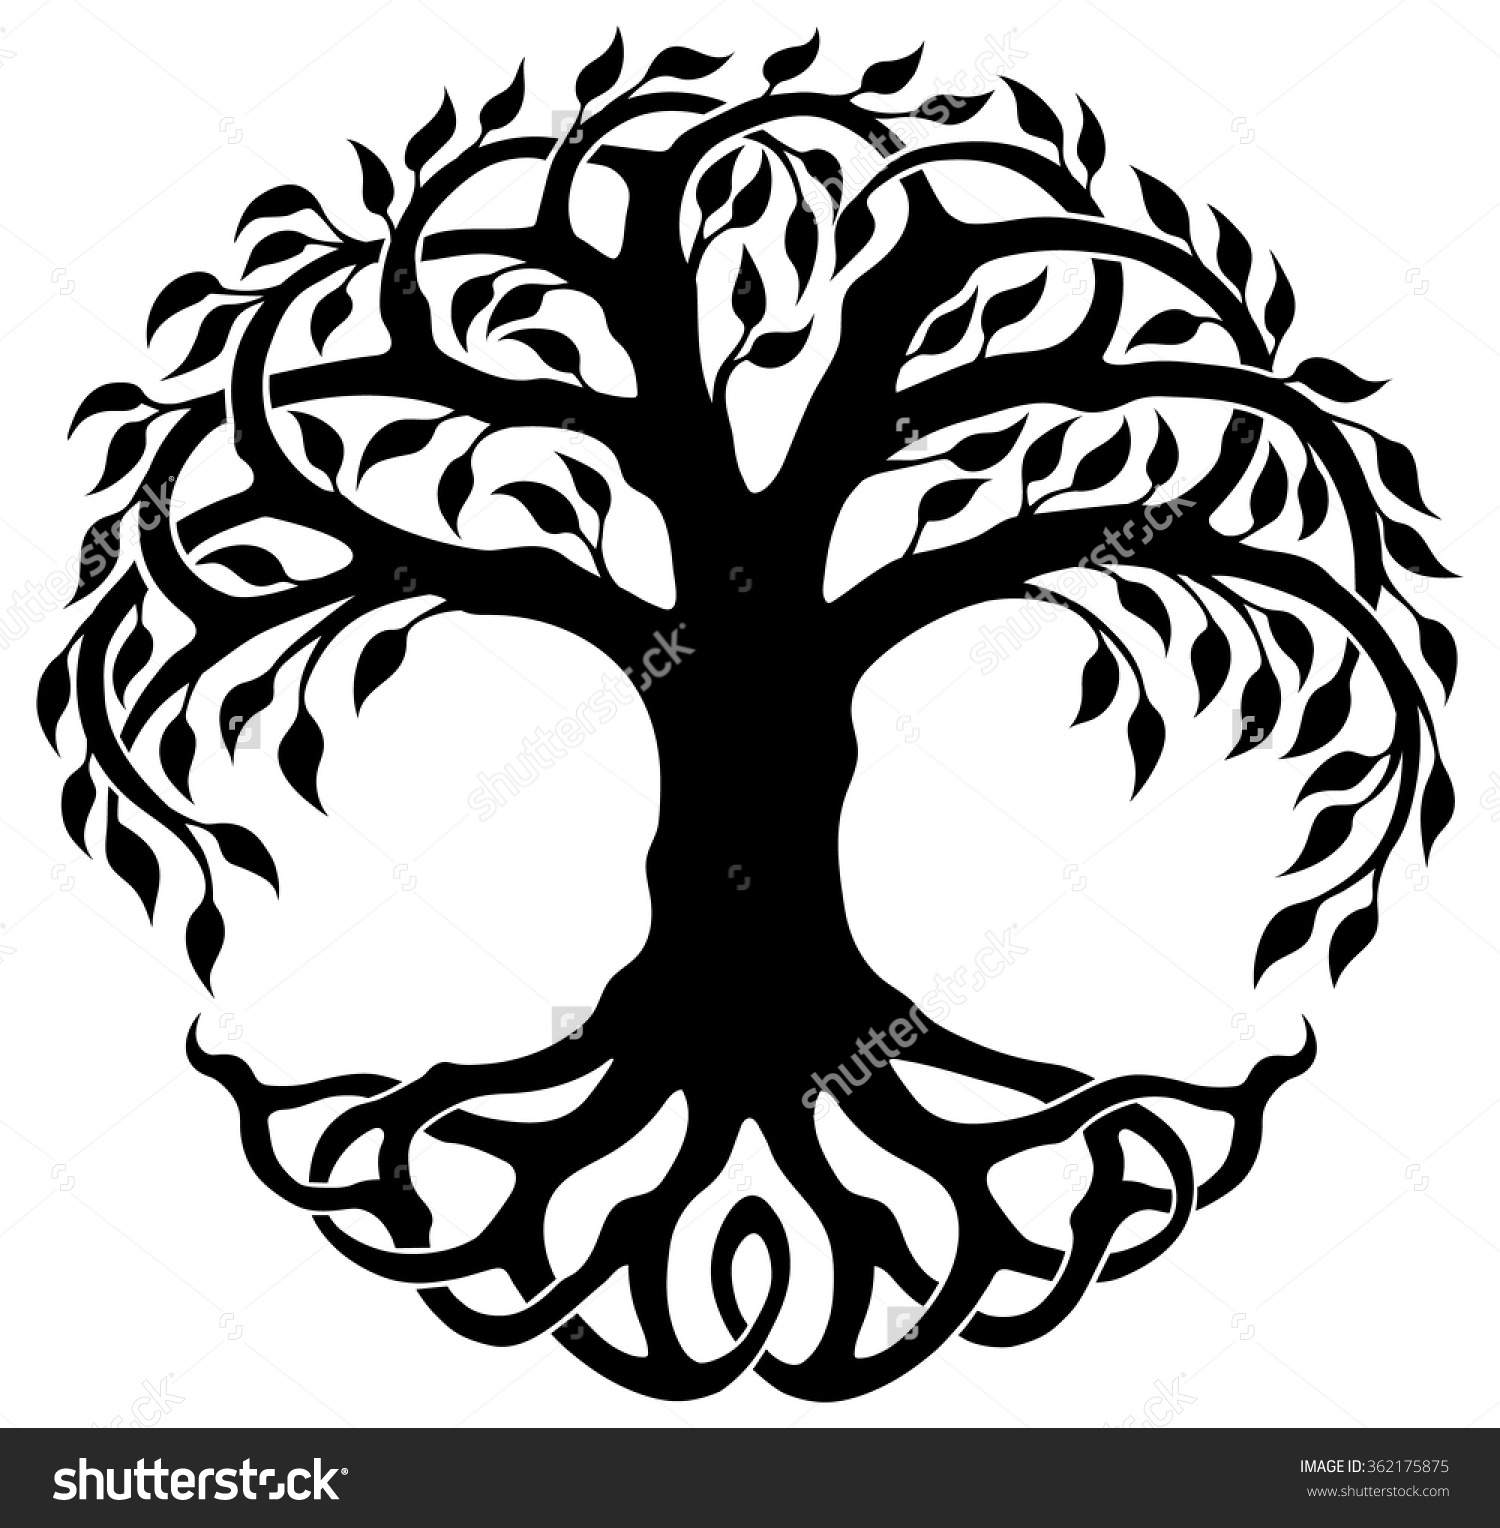 Tree Of Life Clipart | Free download best Tree Of Life Clipart on ... jpg download